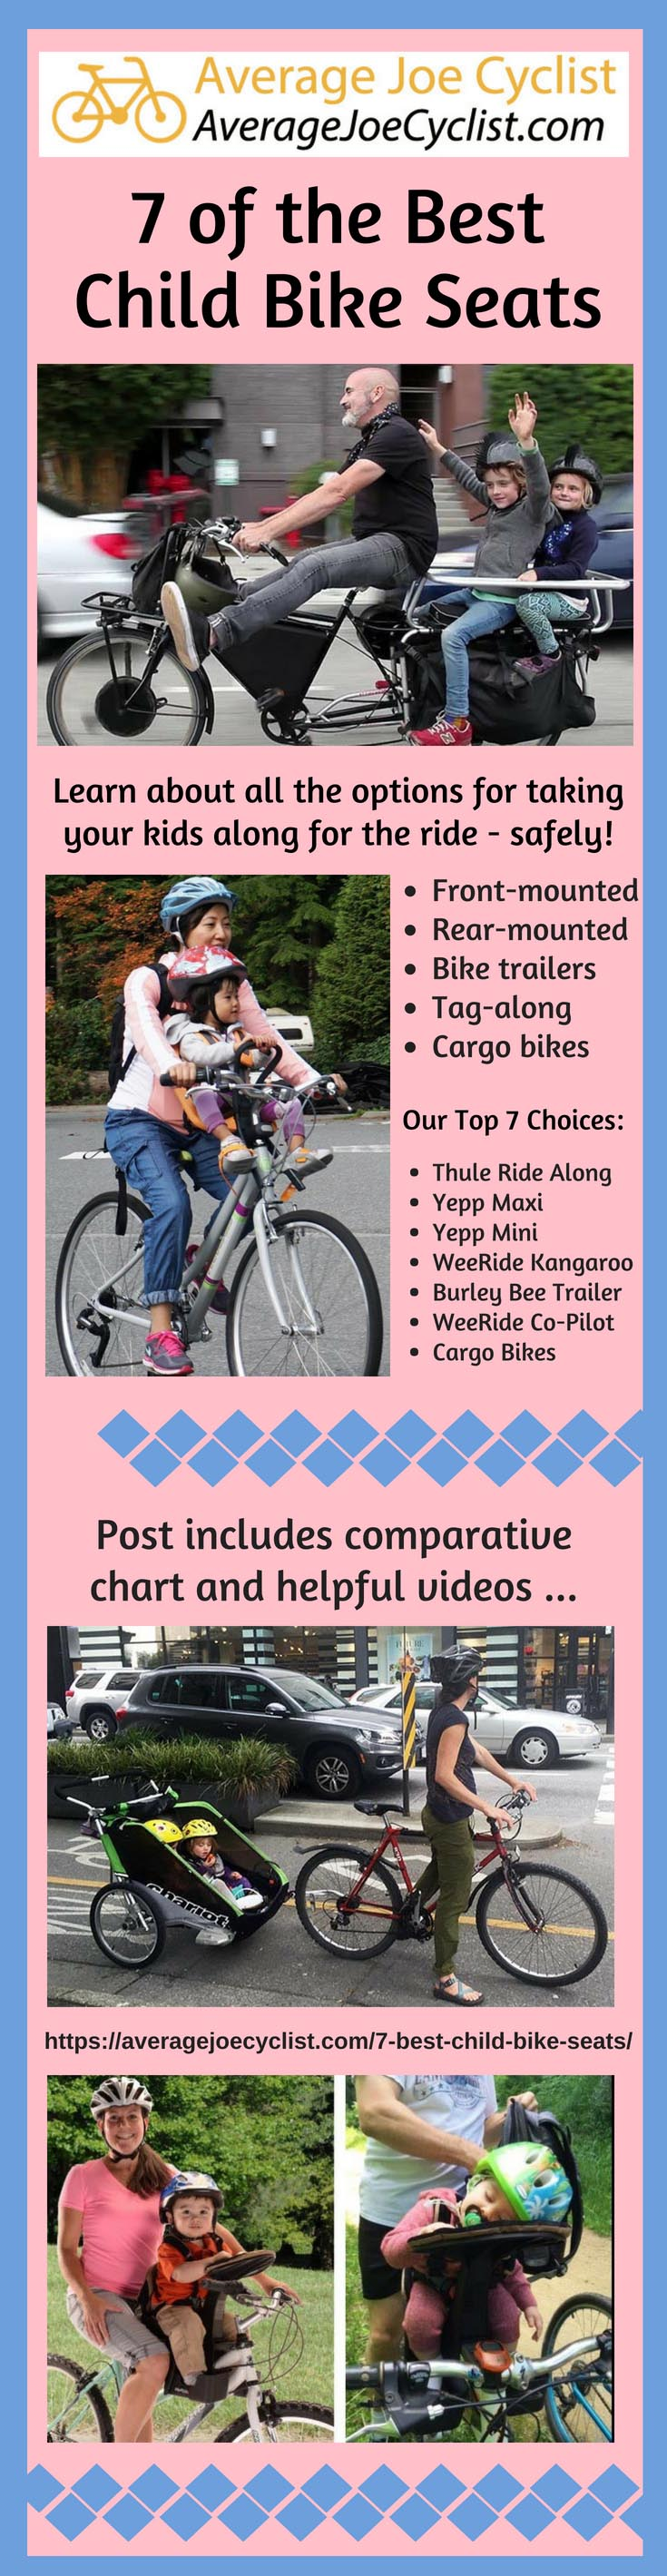 7 of the Best & Safest Baby & Child Bike Seats, with Reviews and Videos - 2019. Post includes a handy comparison chart so you can quickly choose the best bike seat for your child. There are also several videos to help you decide. This post with comparisons and reviews will help you to choose the ideal bike seat for the needs of your family. #AverageJoeCyclist #cycling #cyclists #kids